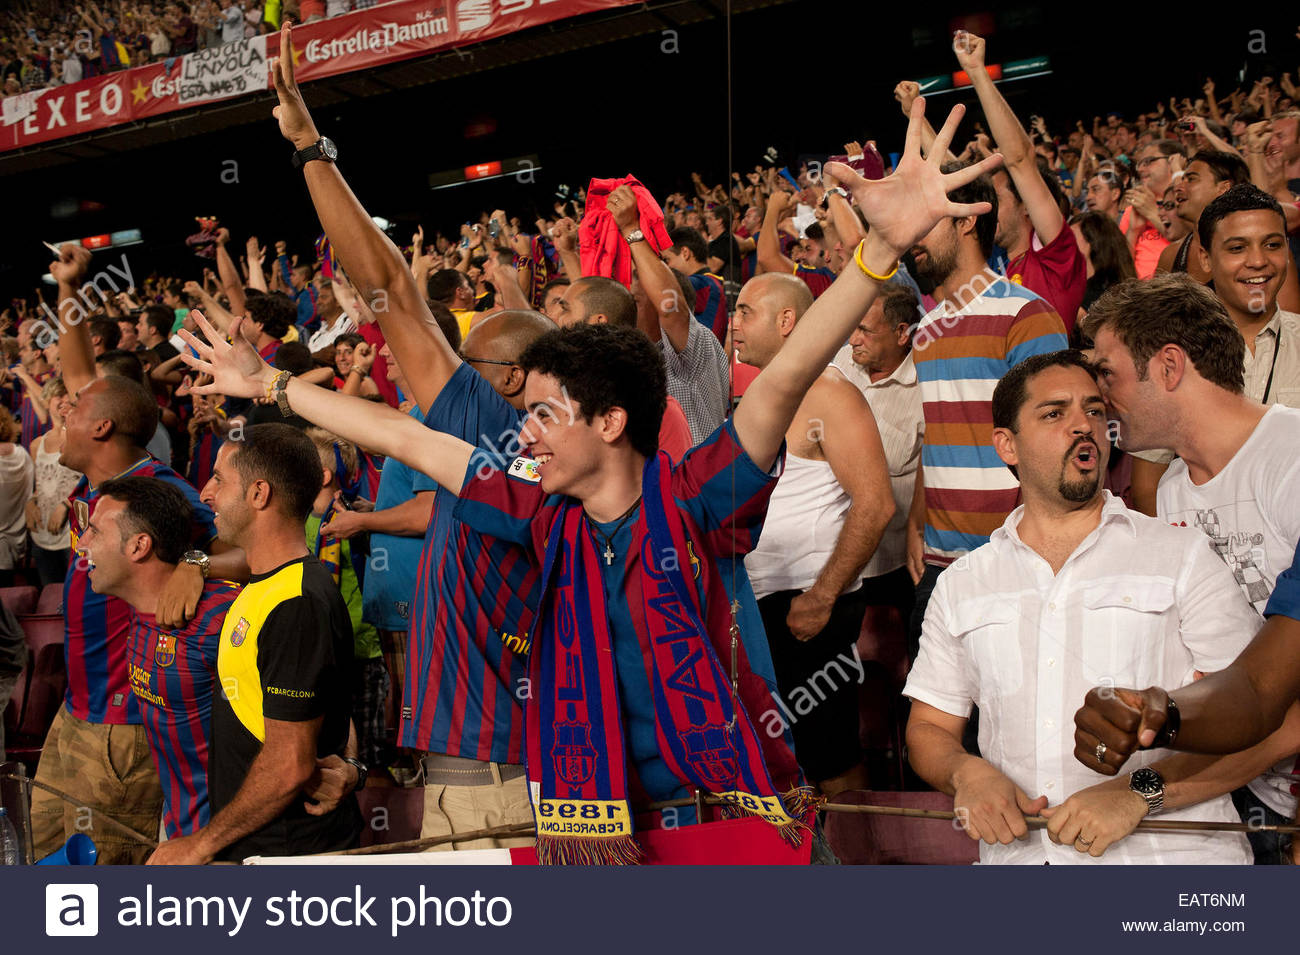 F.C. Barcelona fans at a game at Stadium Camp Nou in Barcelona. - Stock Image